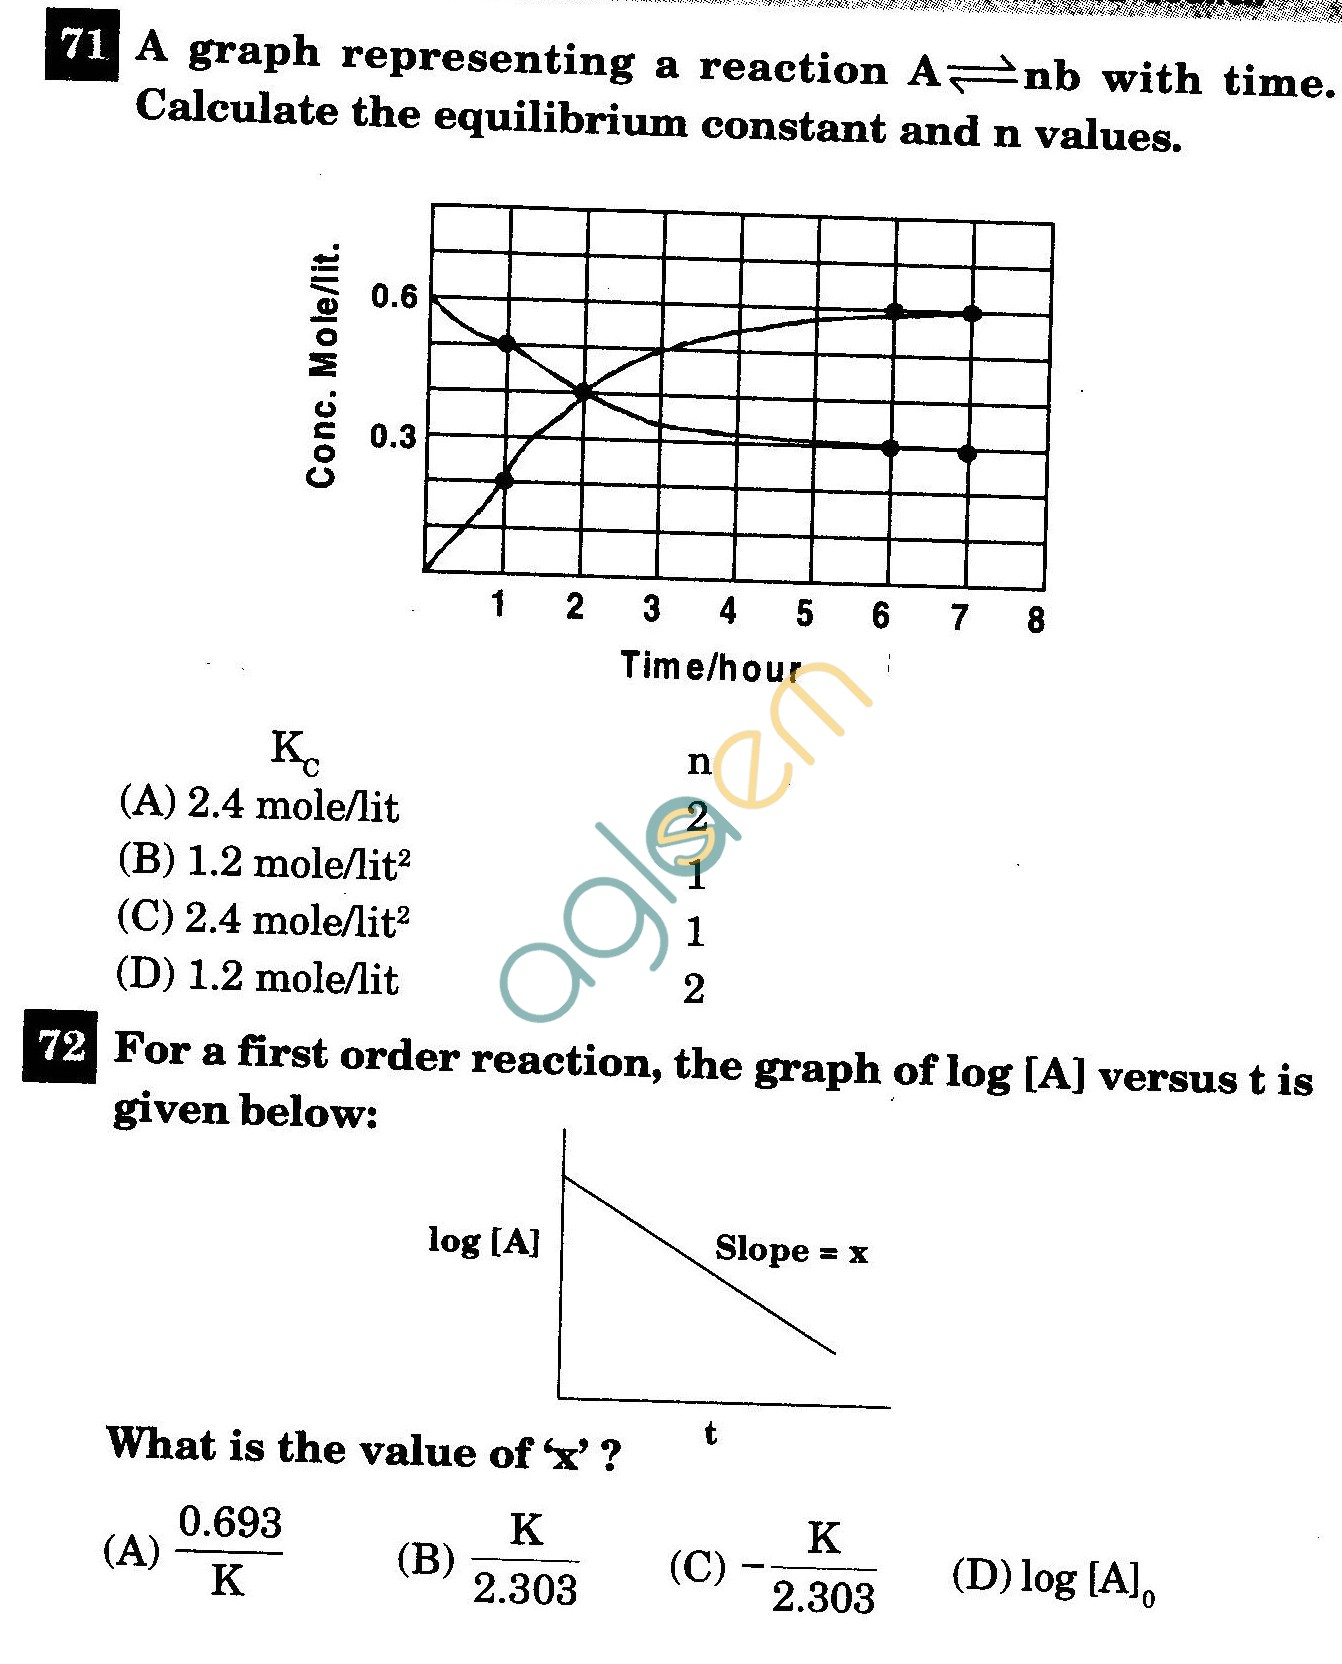 NSTSE 2011 Class XII PCM Question Paper with Answers - Chemistry